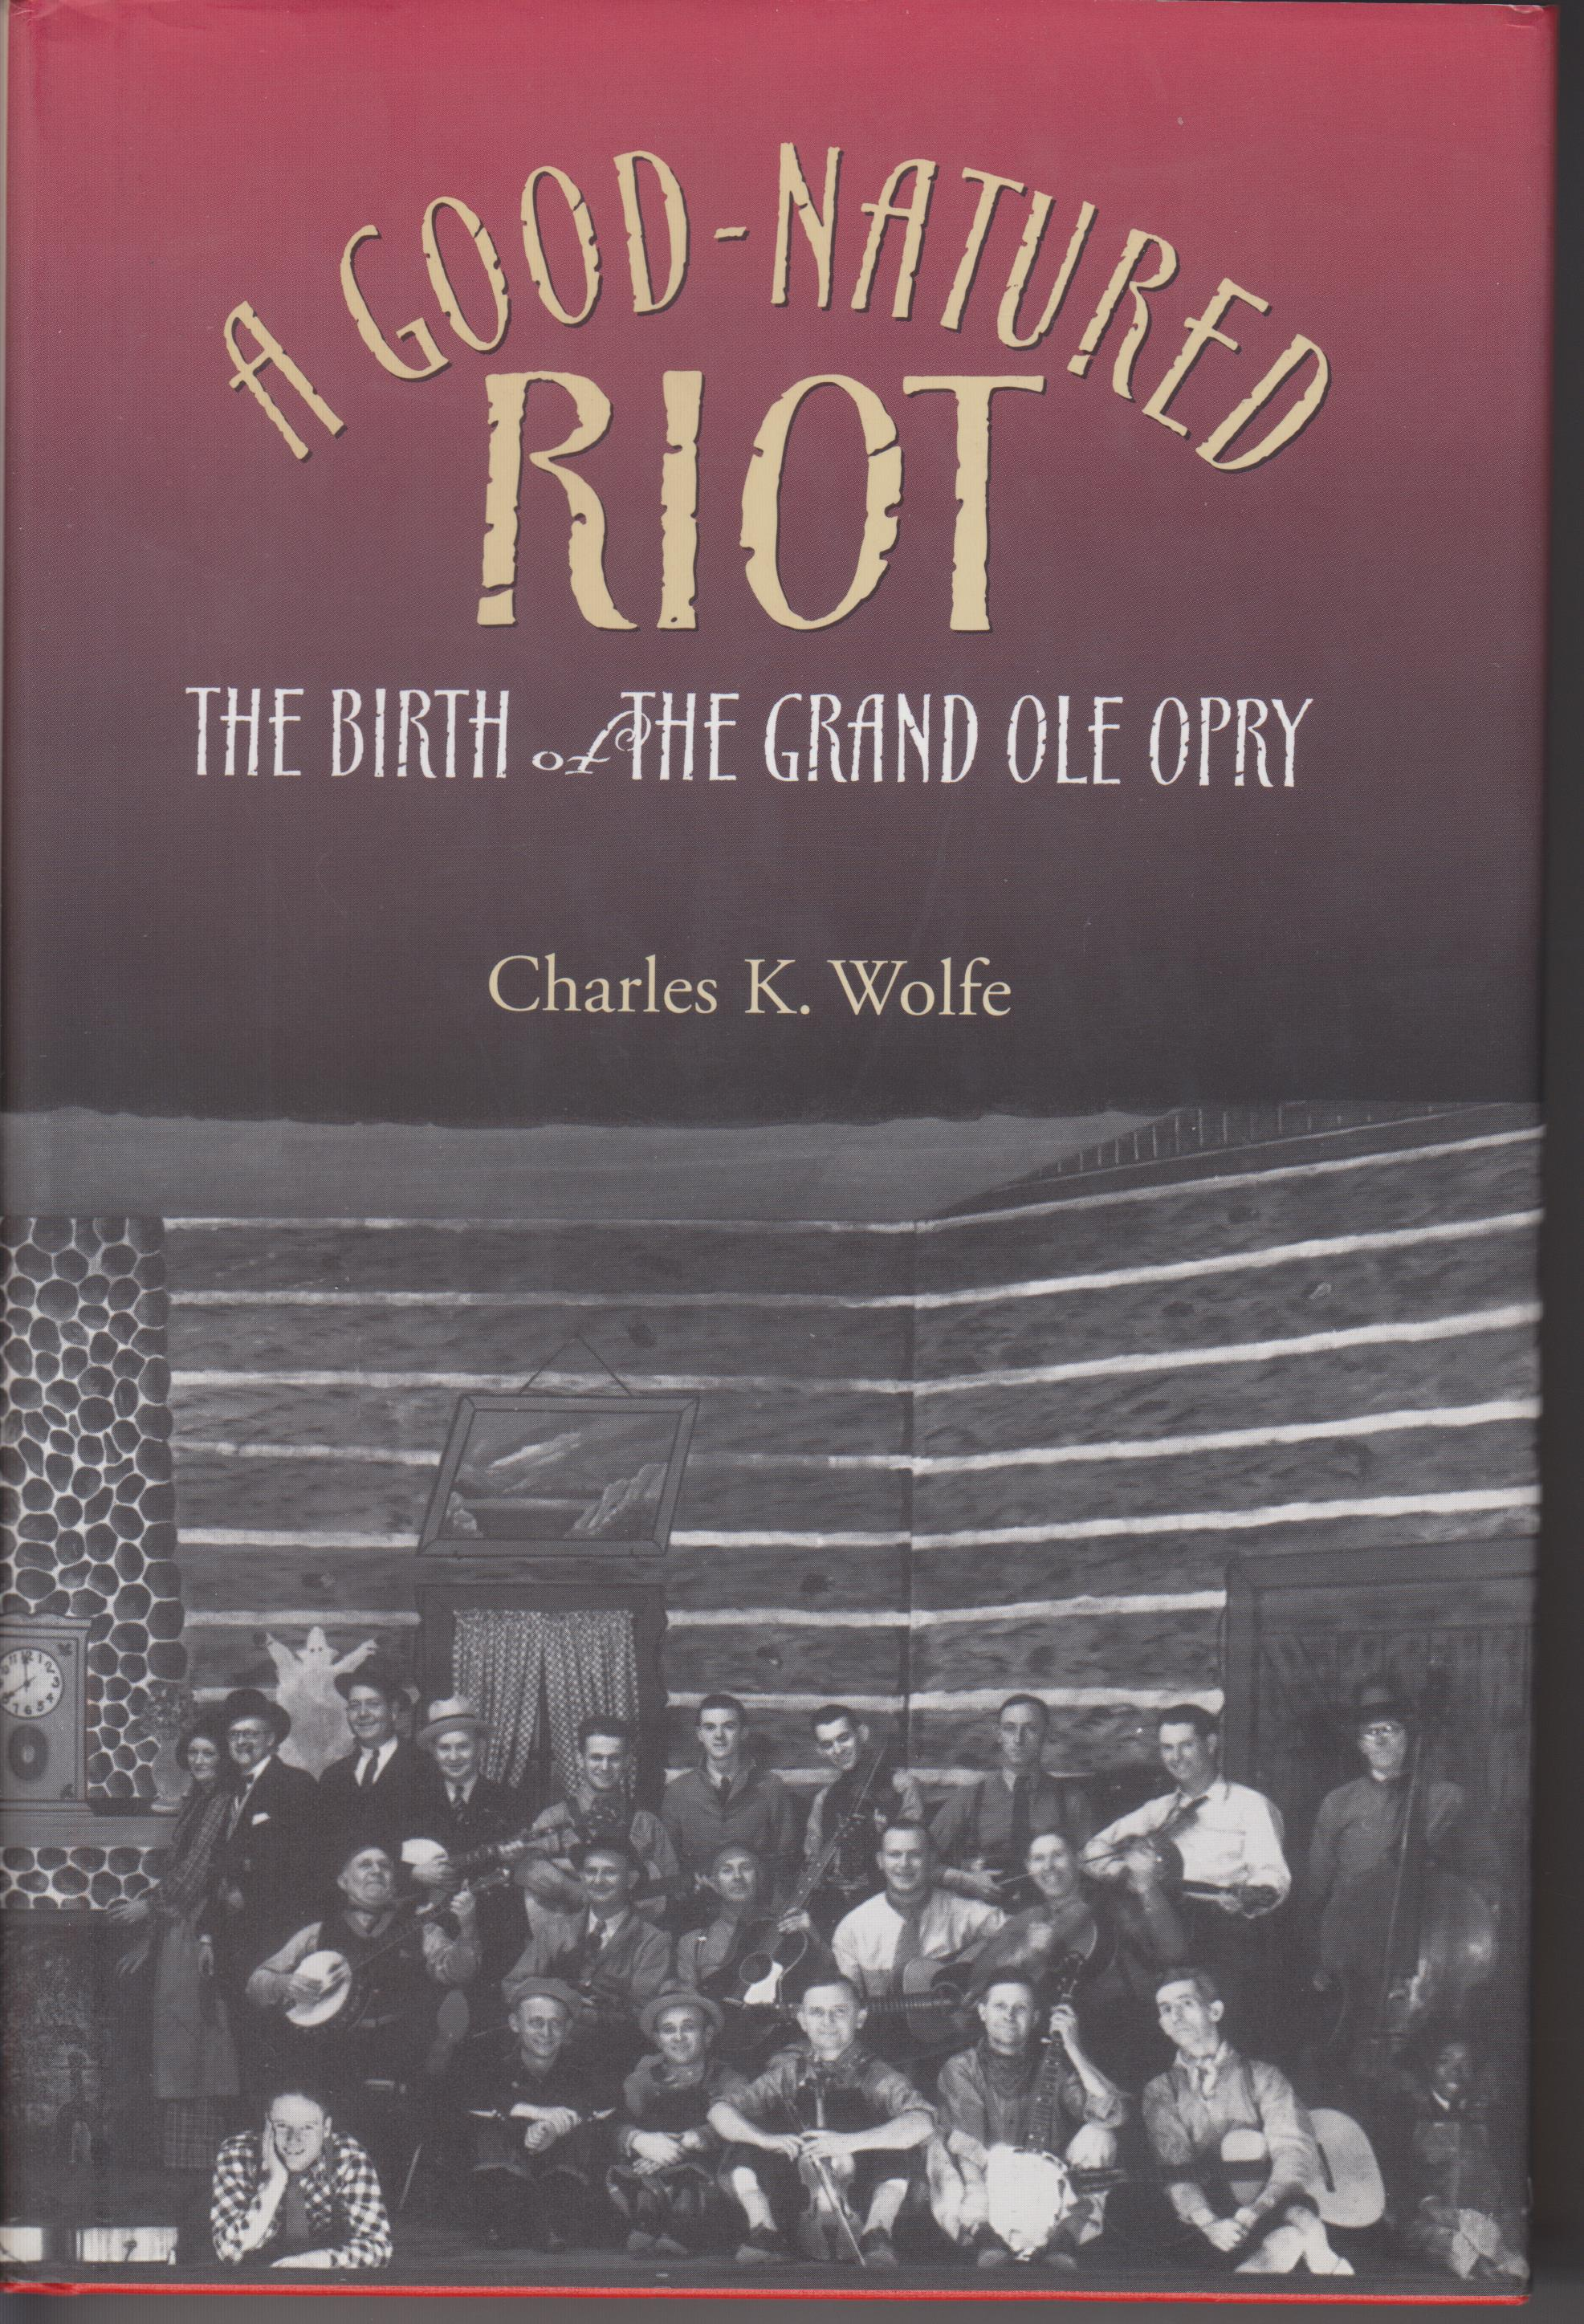 Image for A Good-Natured Riot. The Birth of the Grand Ole Opry